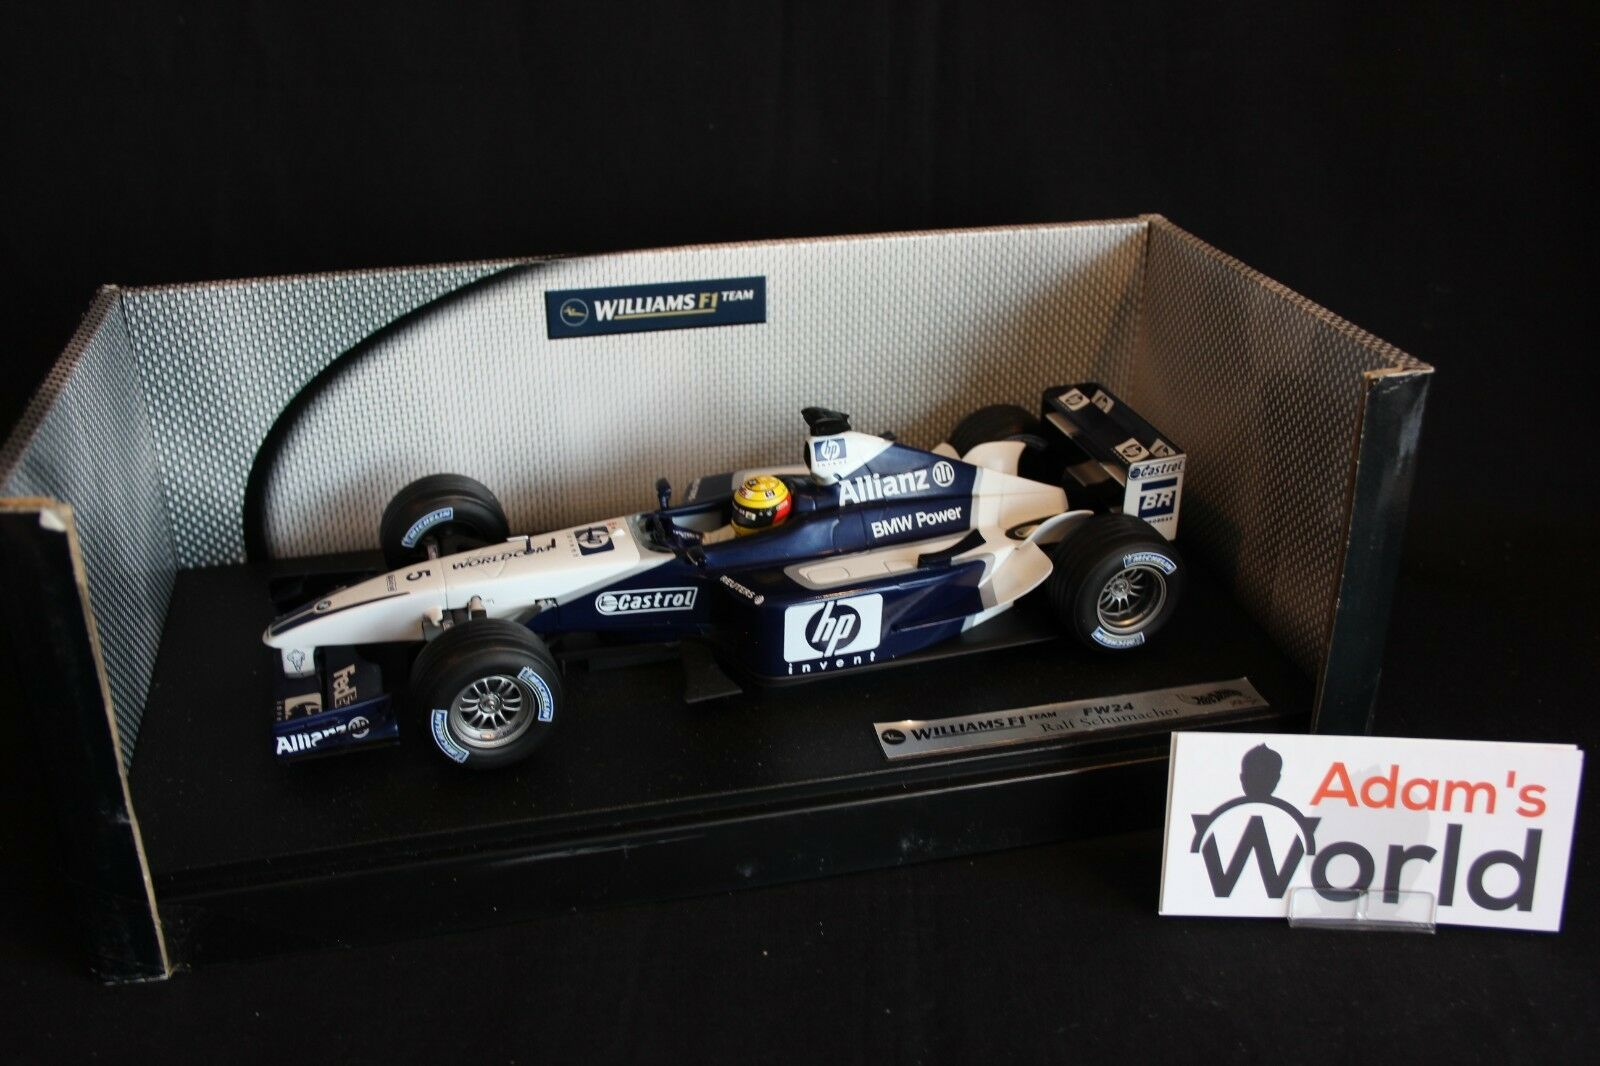 Hot Wheels Williams BMW FW24 2002 1 18 Ralf Schumacher (GER)